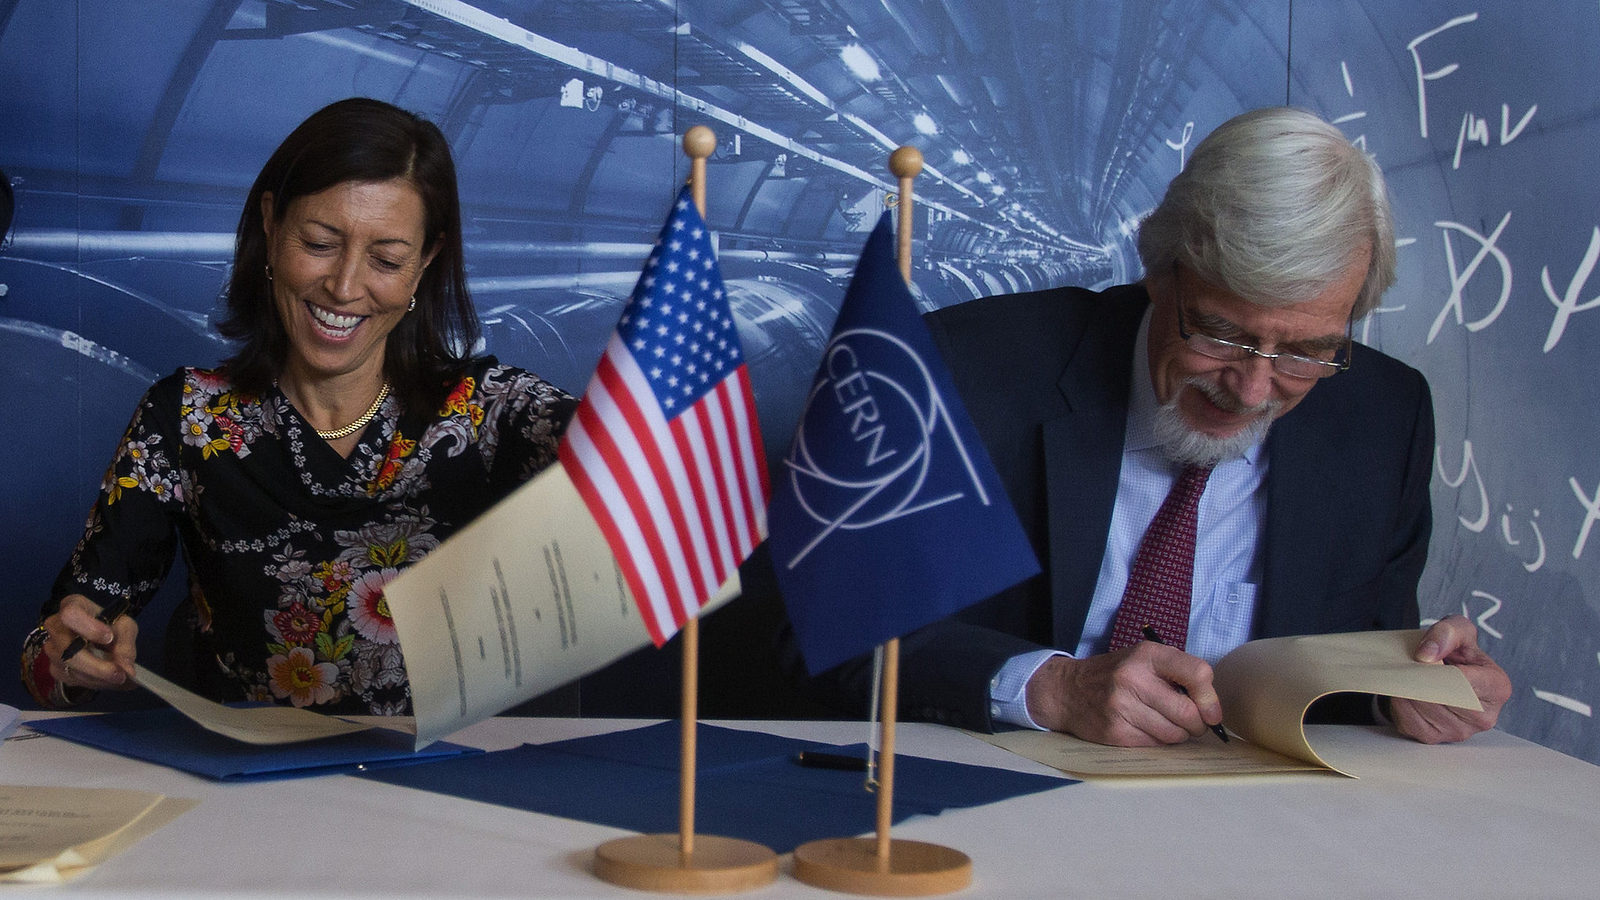 The United States and the European physics laboratory have formally agreed to partner on continued LHC research, upcoming neutrino research and a future collider. Photo: Eric Bridiers, US Mission